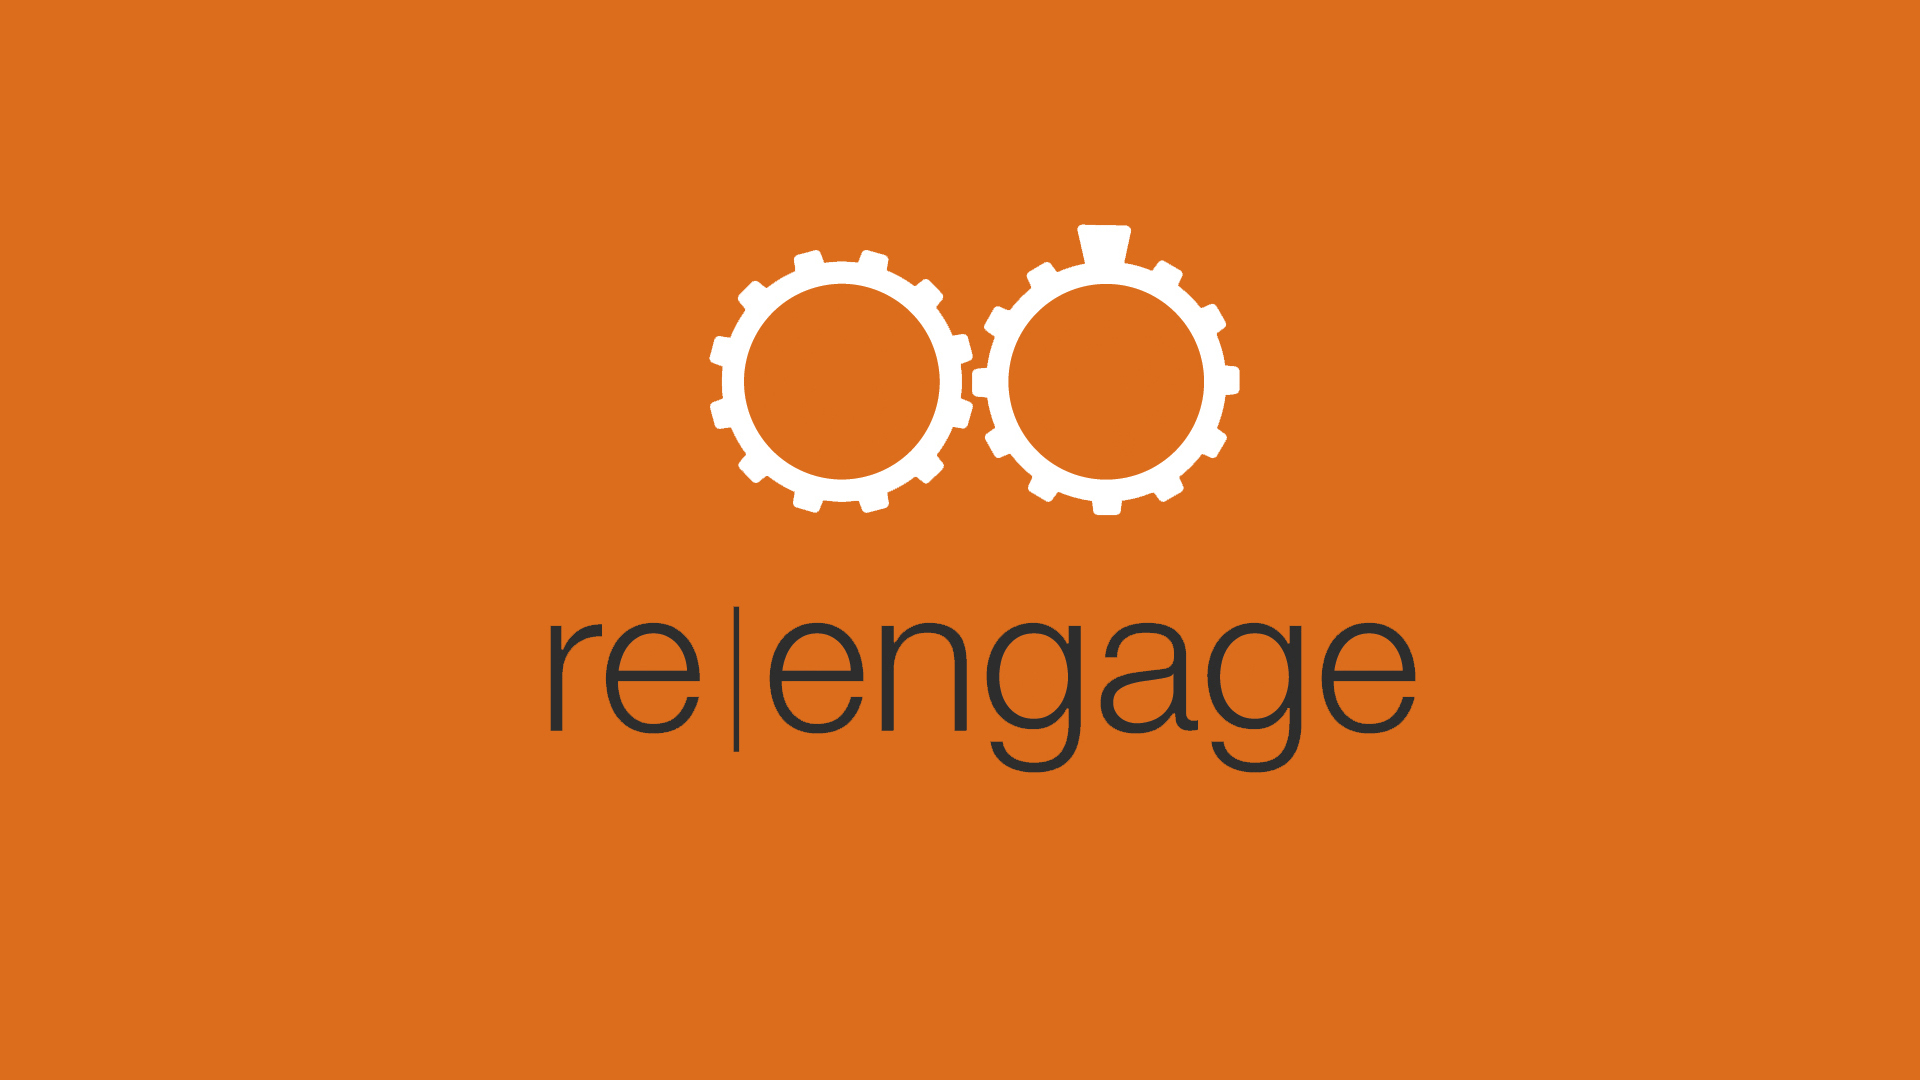 ReEngage Orange Logo.jpg